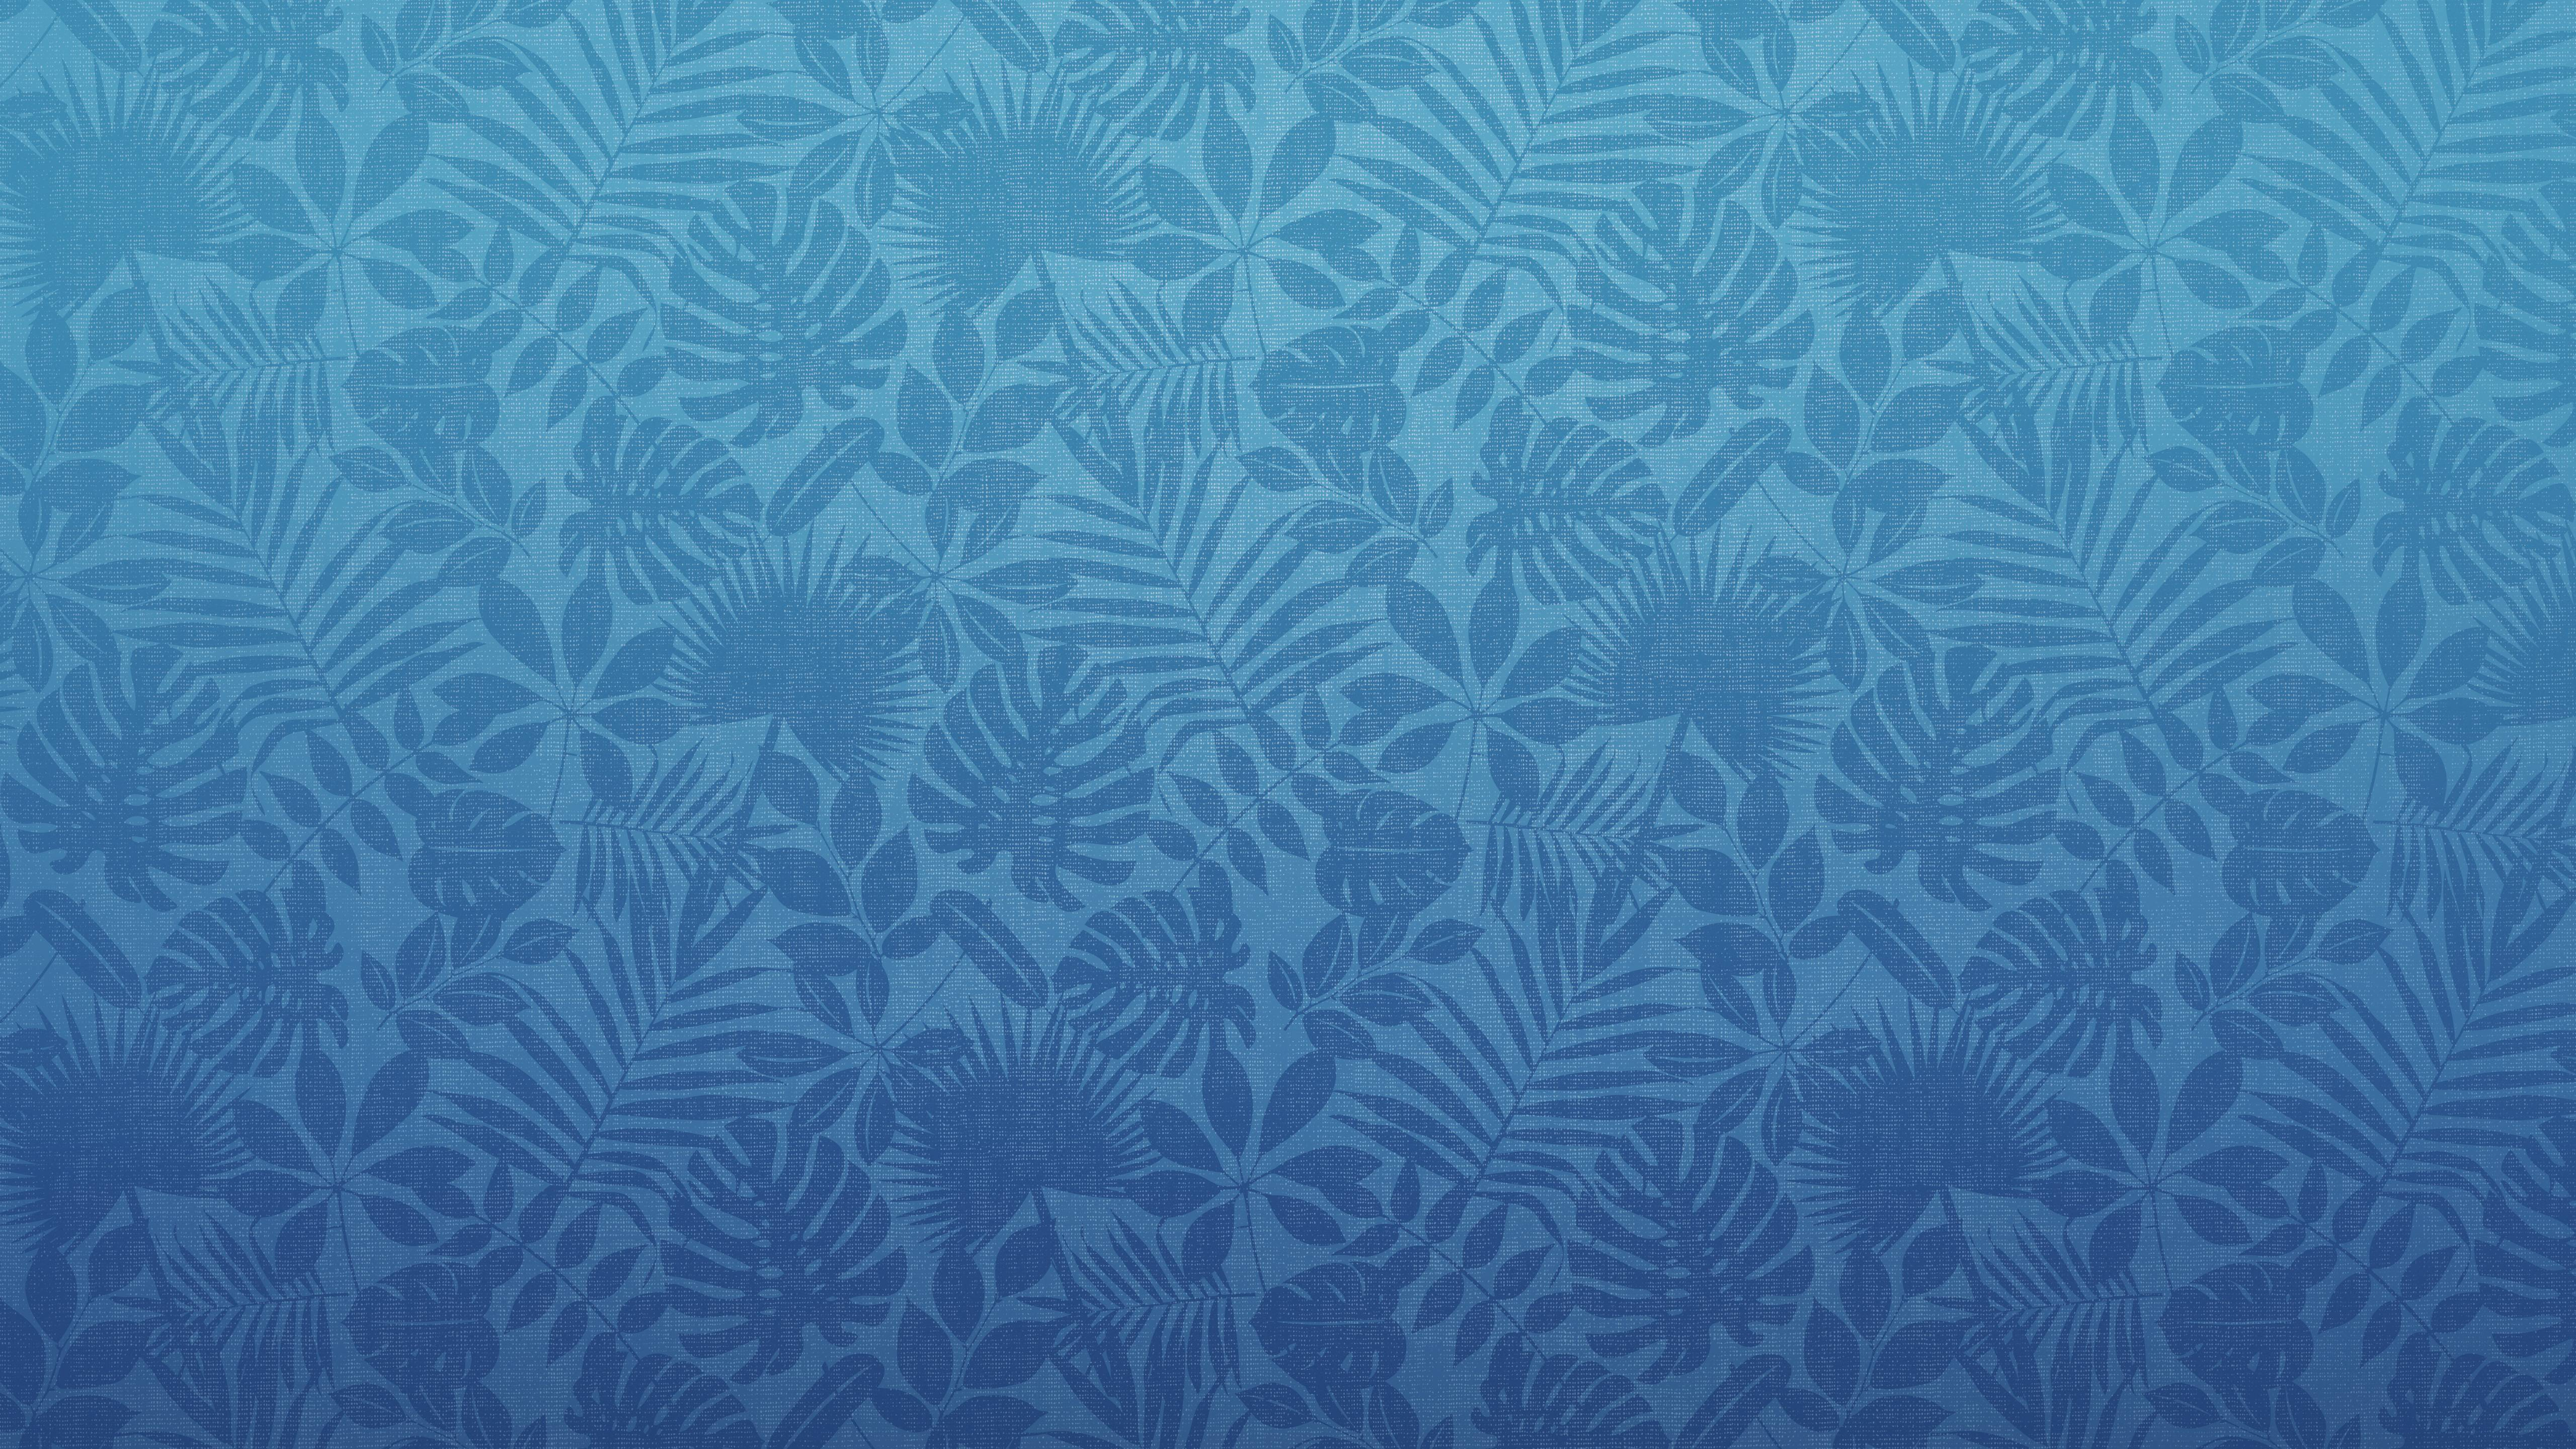 Abstract Pattern 5k HD 4k Wallpapers Images Backgrounds